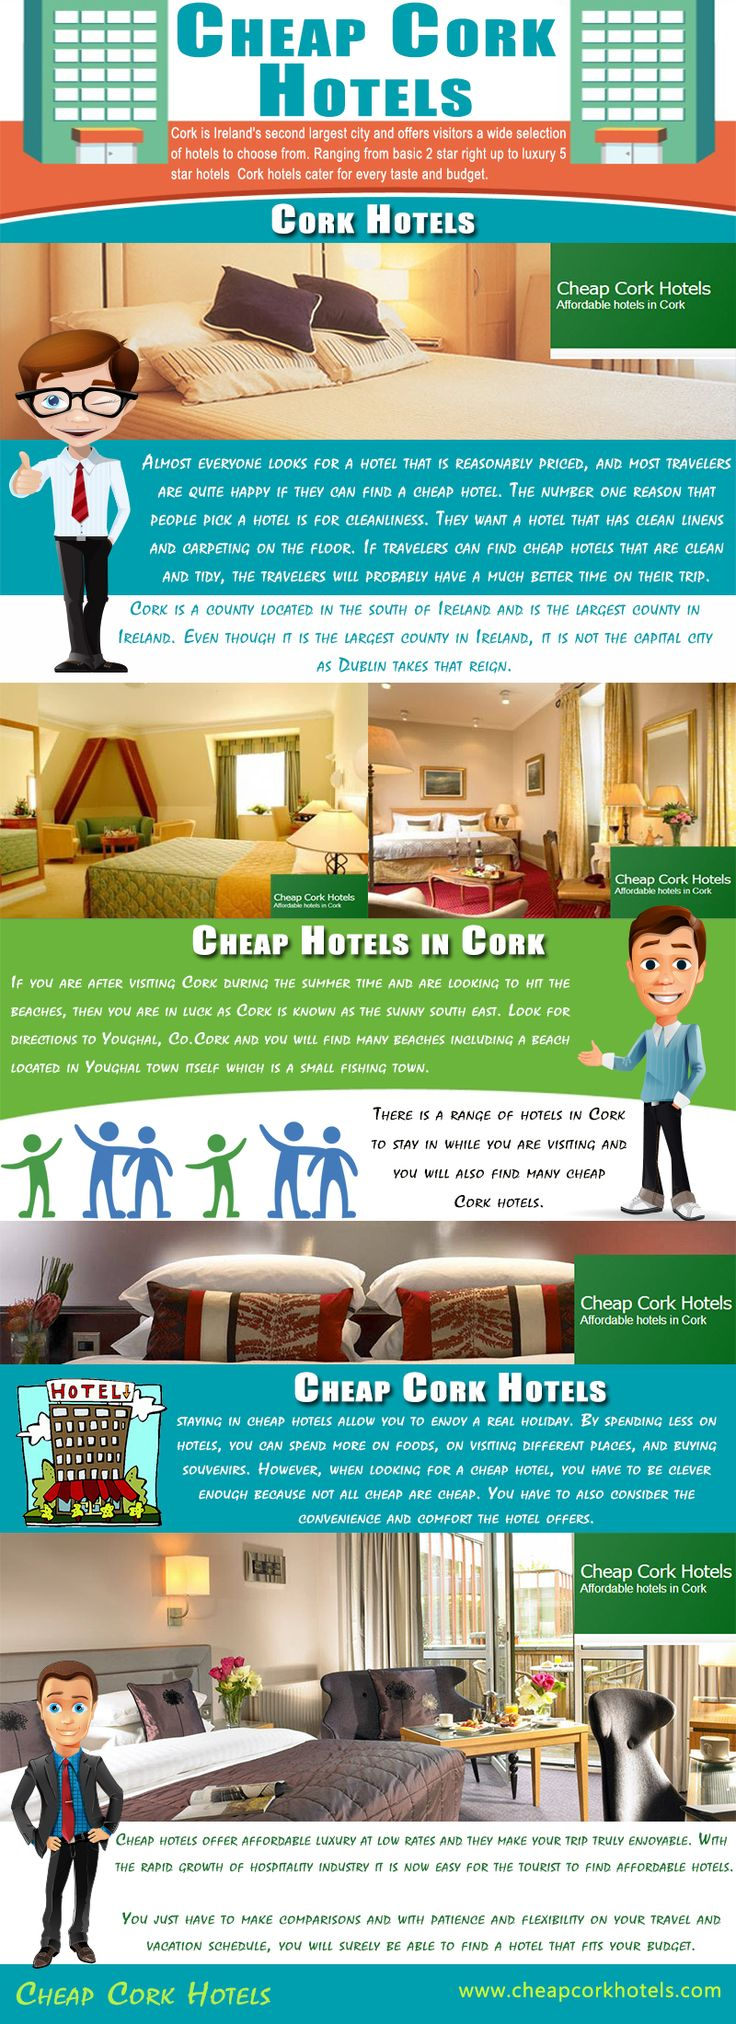 Visit our site http://www.cheapcorkhotels.com/ for more information on Cheap Cork Hotels.Cheap Cork Hotels are elegant and offer high standard accommodations and integrated service to their guests. Hotels have all the required facilities like a television set, delicious food, excellent service and good rooms. They are clean and have an impressive ambience. Cork Hotels leaves an everlasting impression on their travelers.